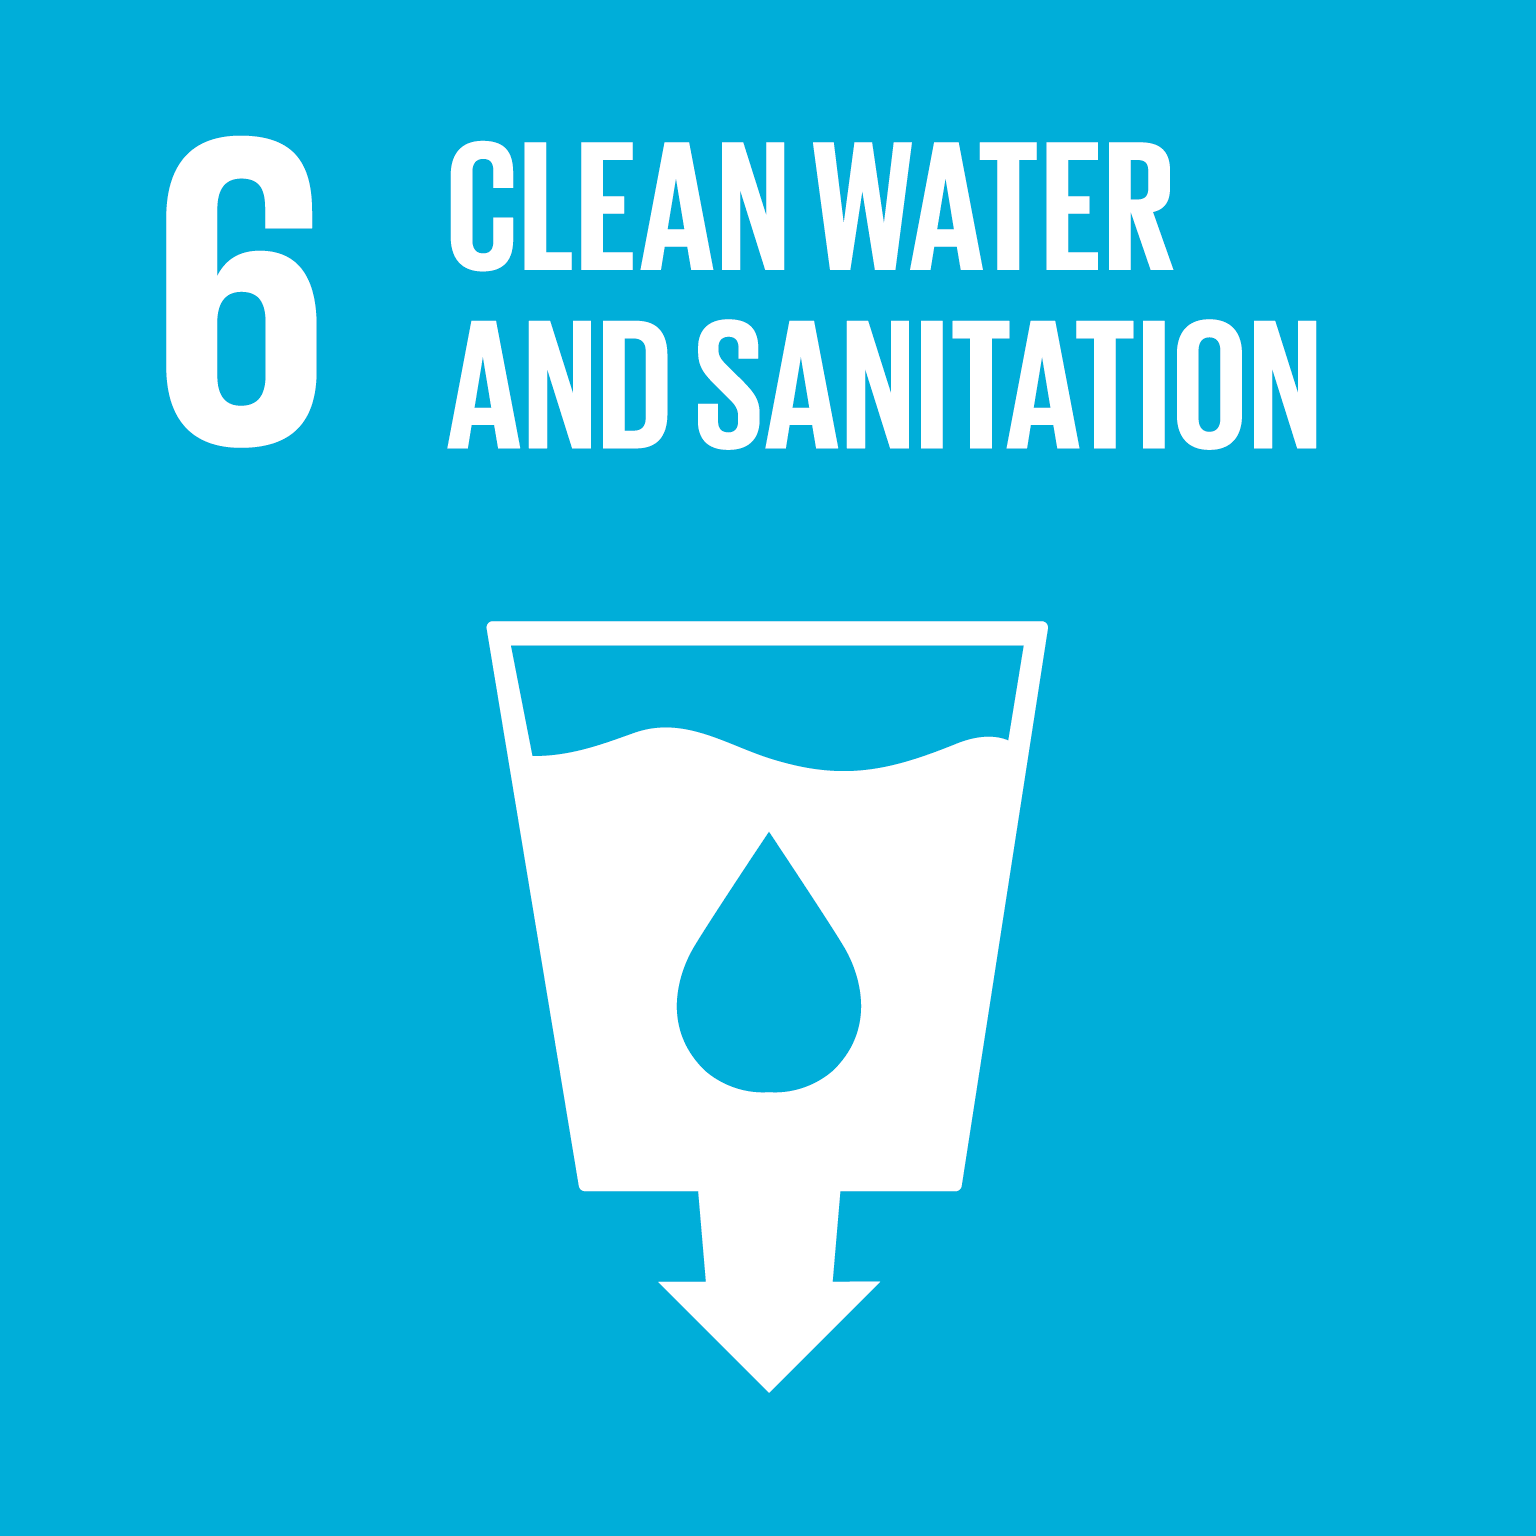 Sustainable Development Goal 6: Clean water and sanitation